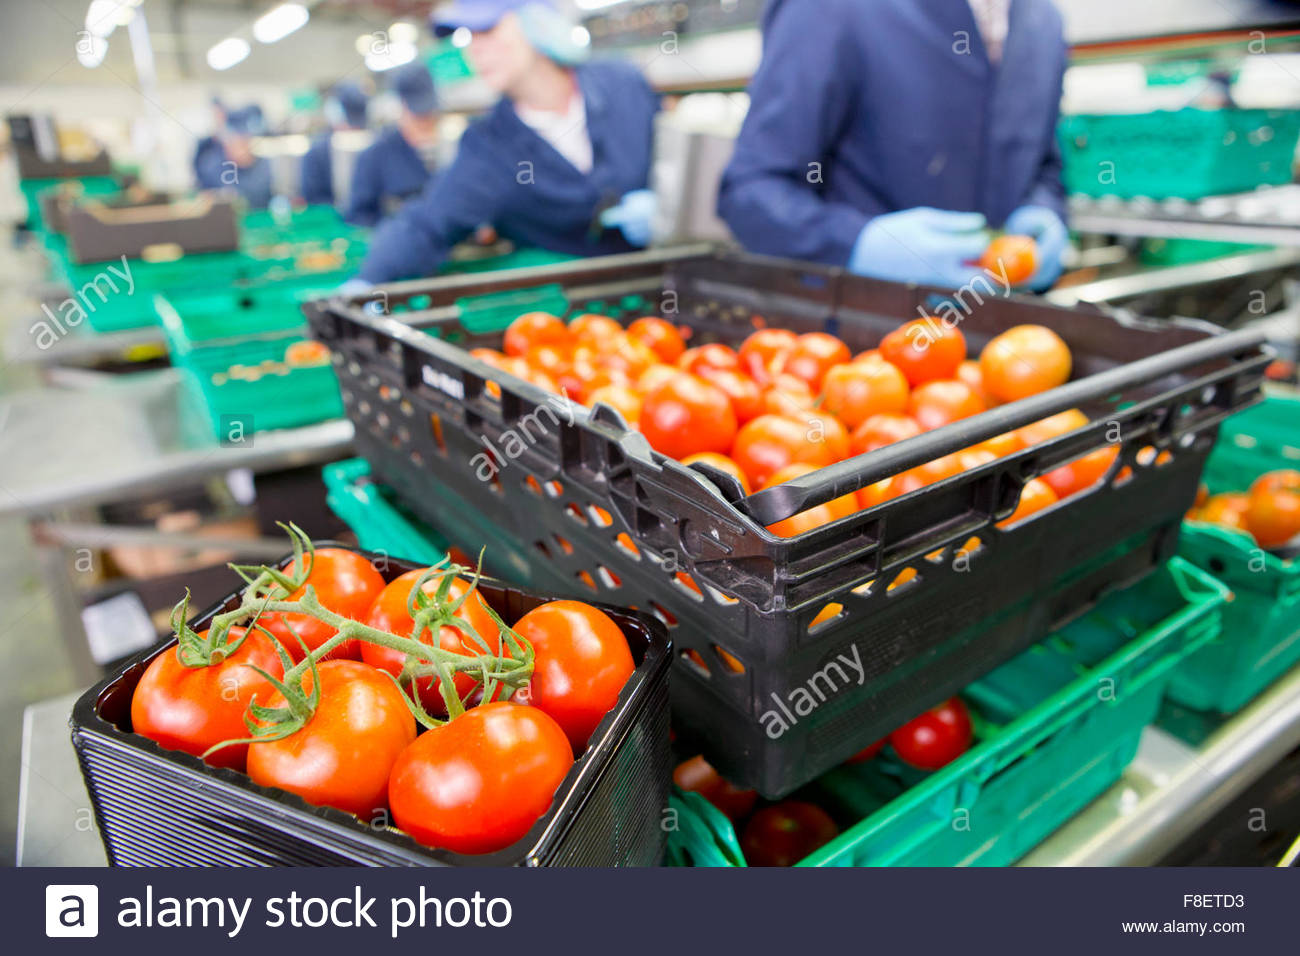 Ripe red vine tomatoes in package and bin in food processing plant - Stock Image